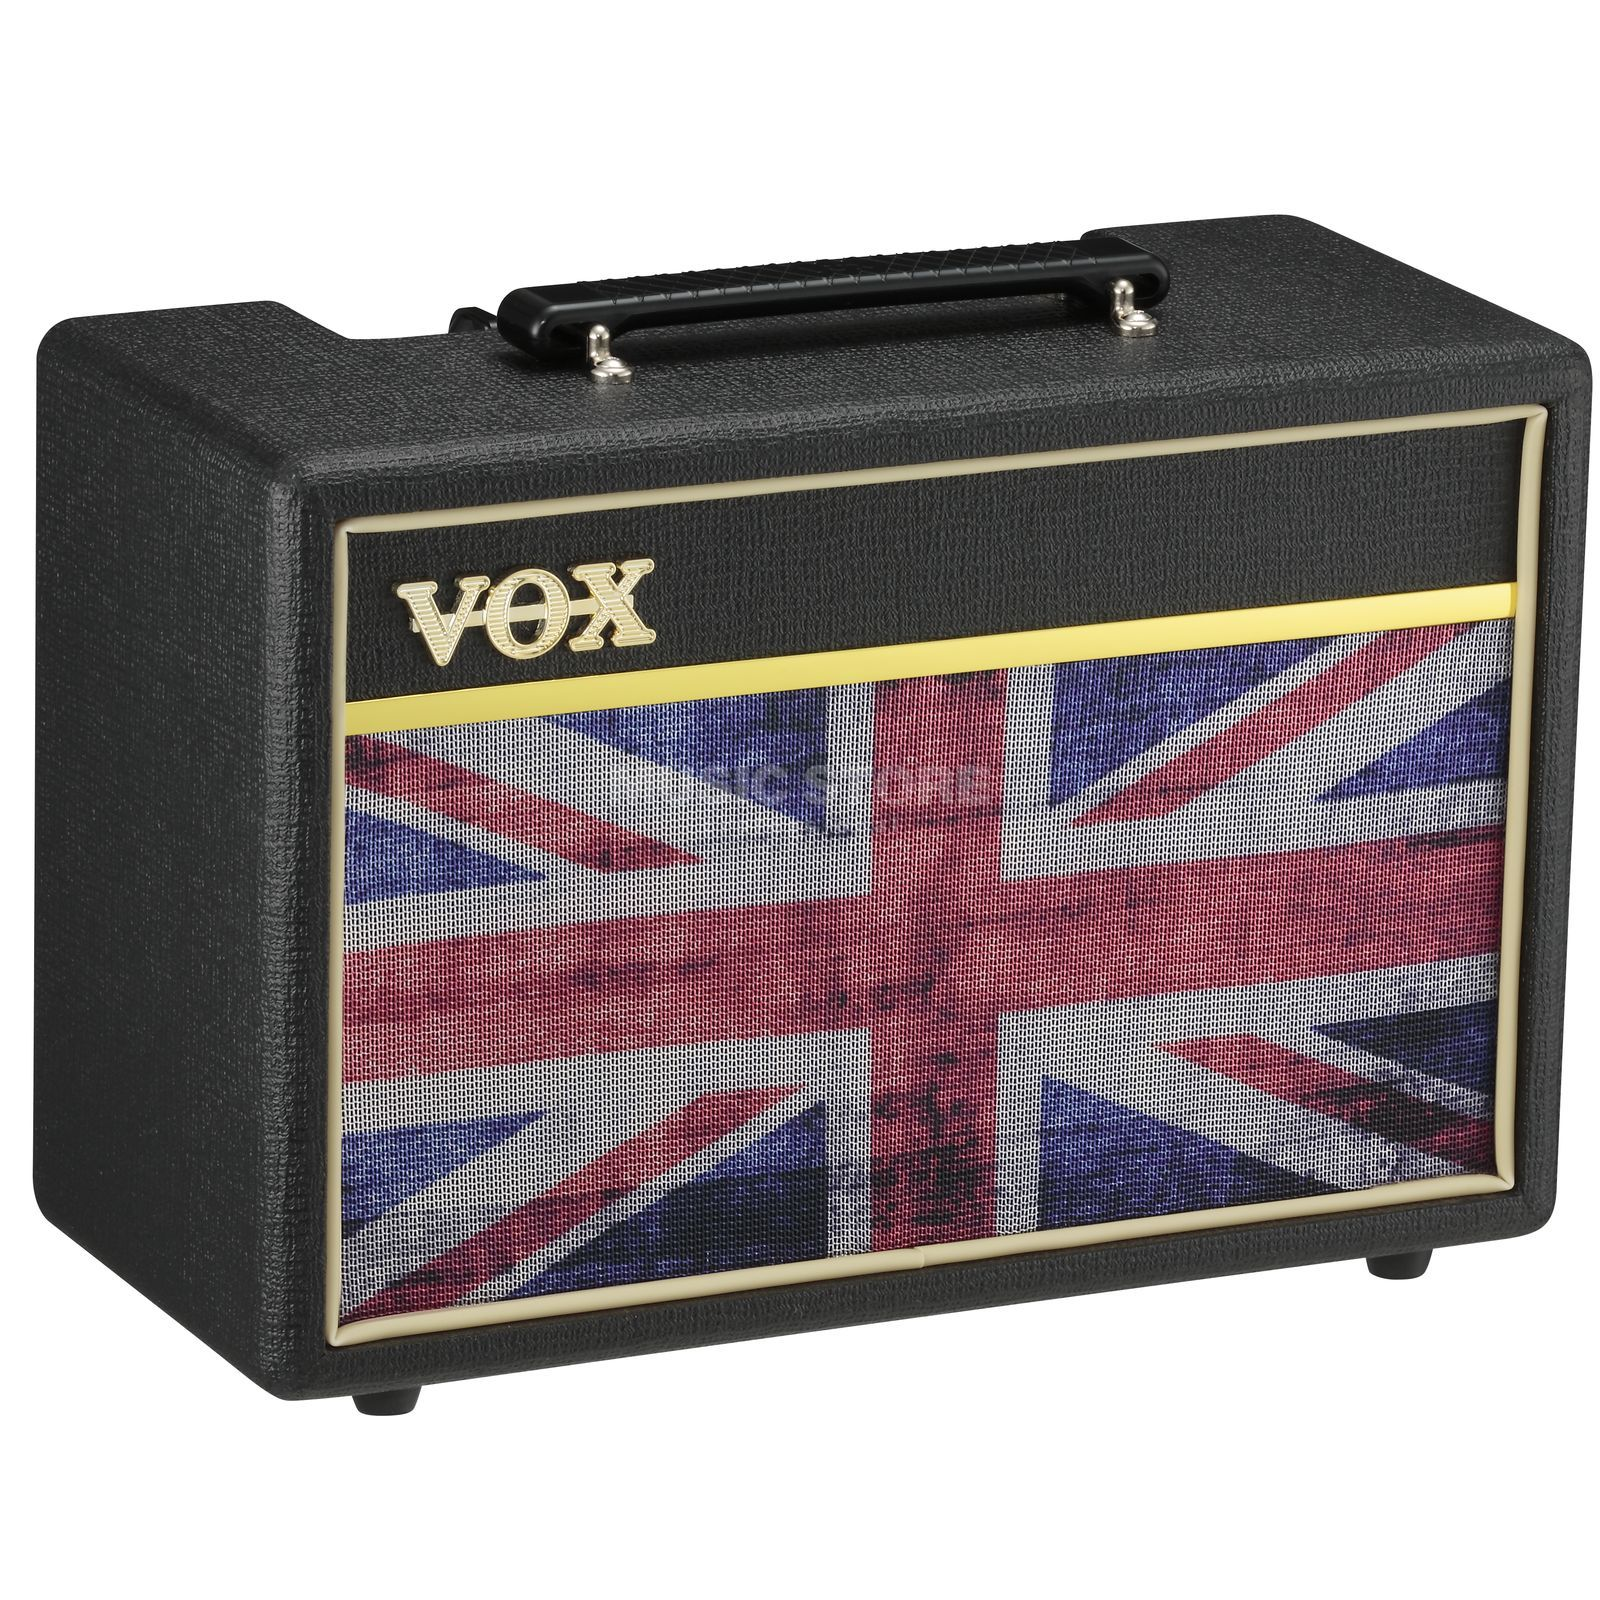 VOX Pathfinder 10 Union Jack Black Limited Edition Image du produit